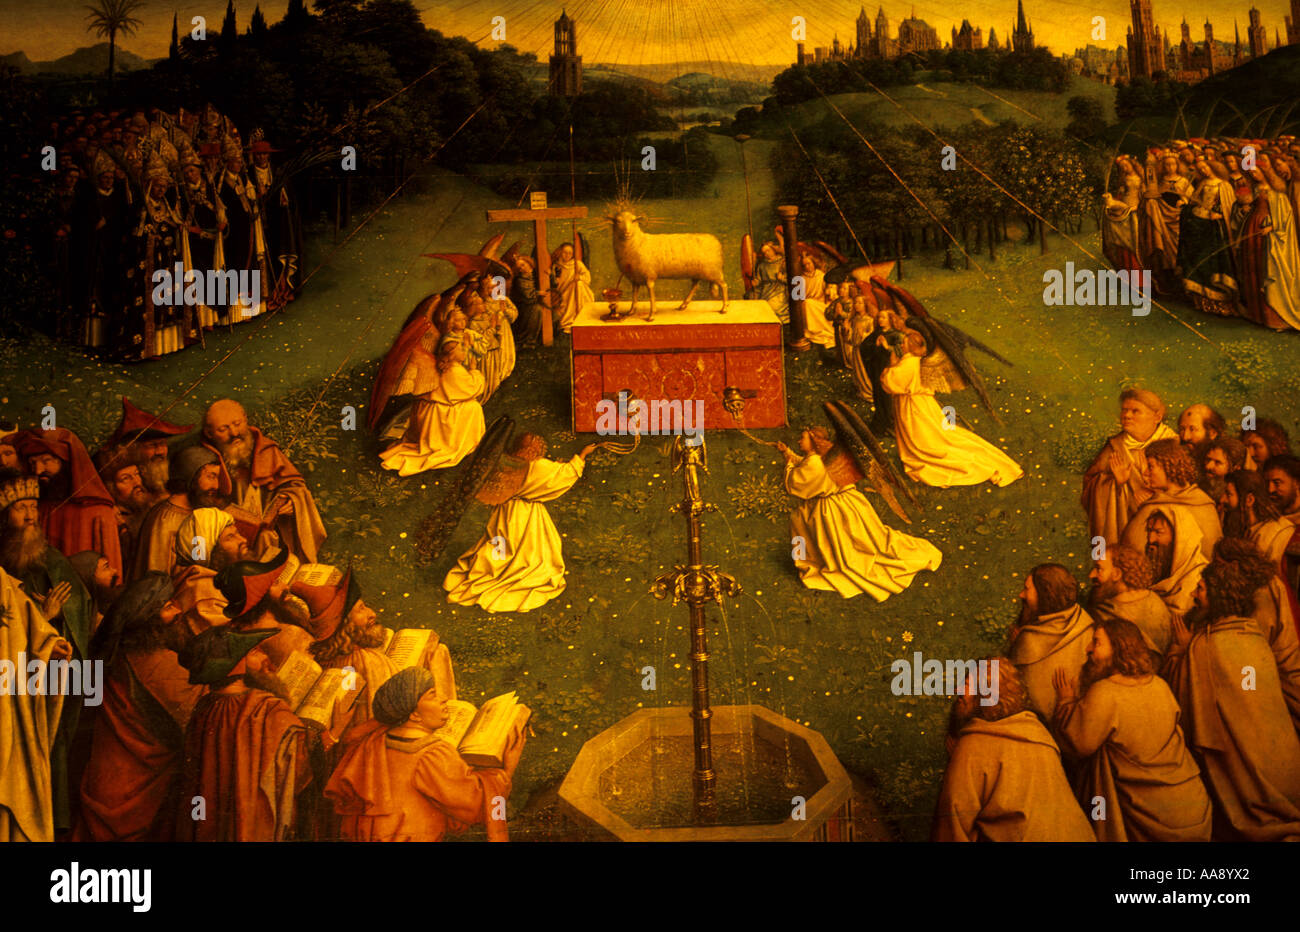 The Adoration of the Lamb f by Hubert van Eyck and Jan van Eyck Cathedral of St Bavon 12th Century Ghent Flanders Stock Photo